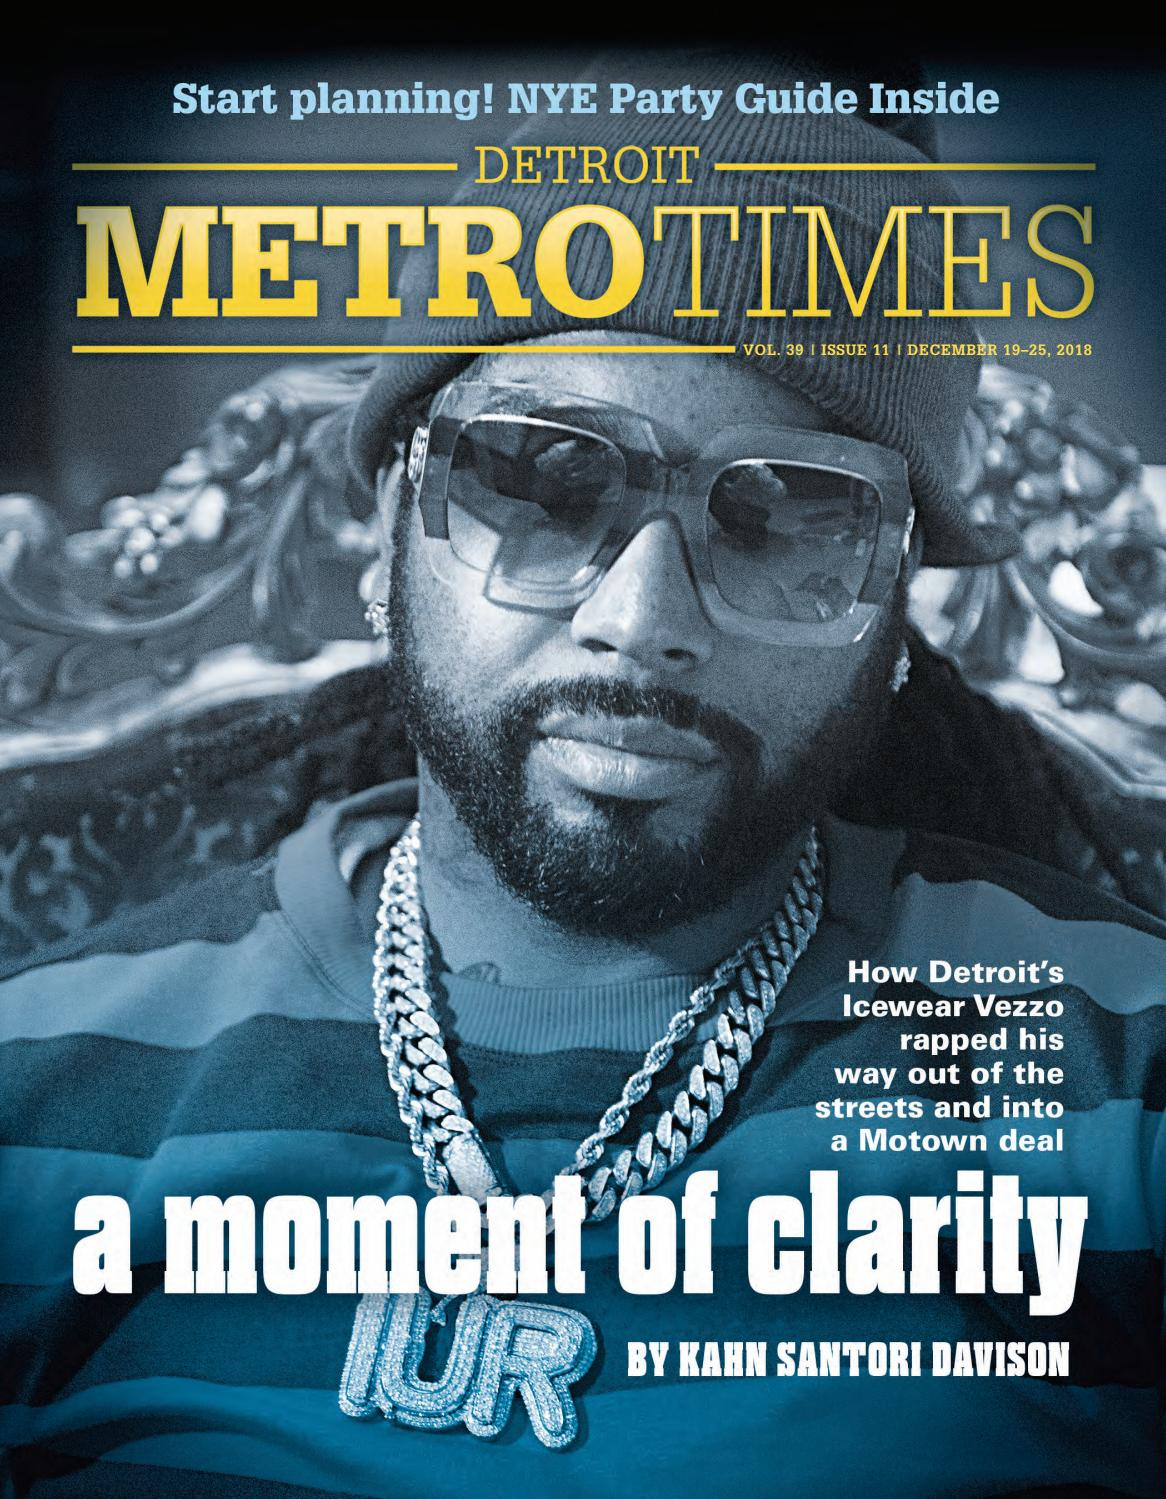 Metro Times 12/19/18 by Euclid Media Group - issuu